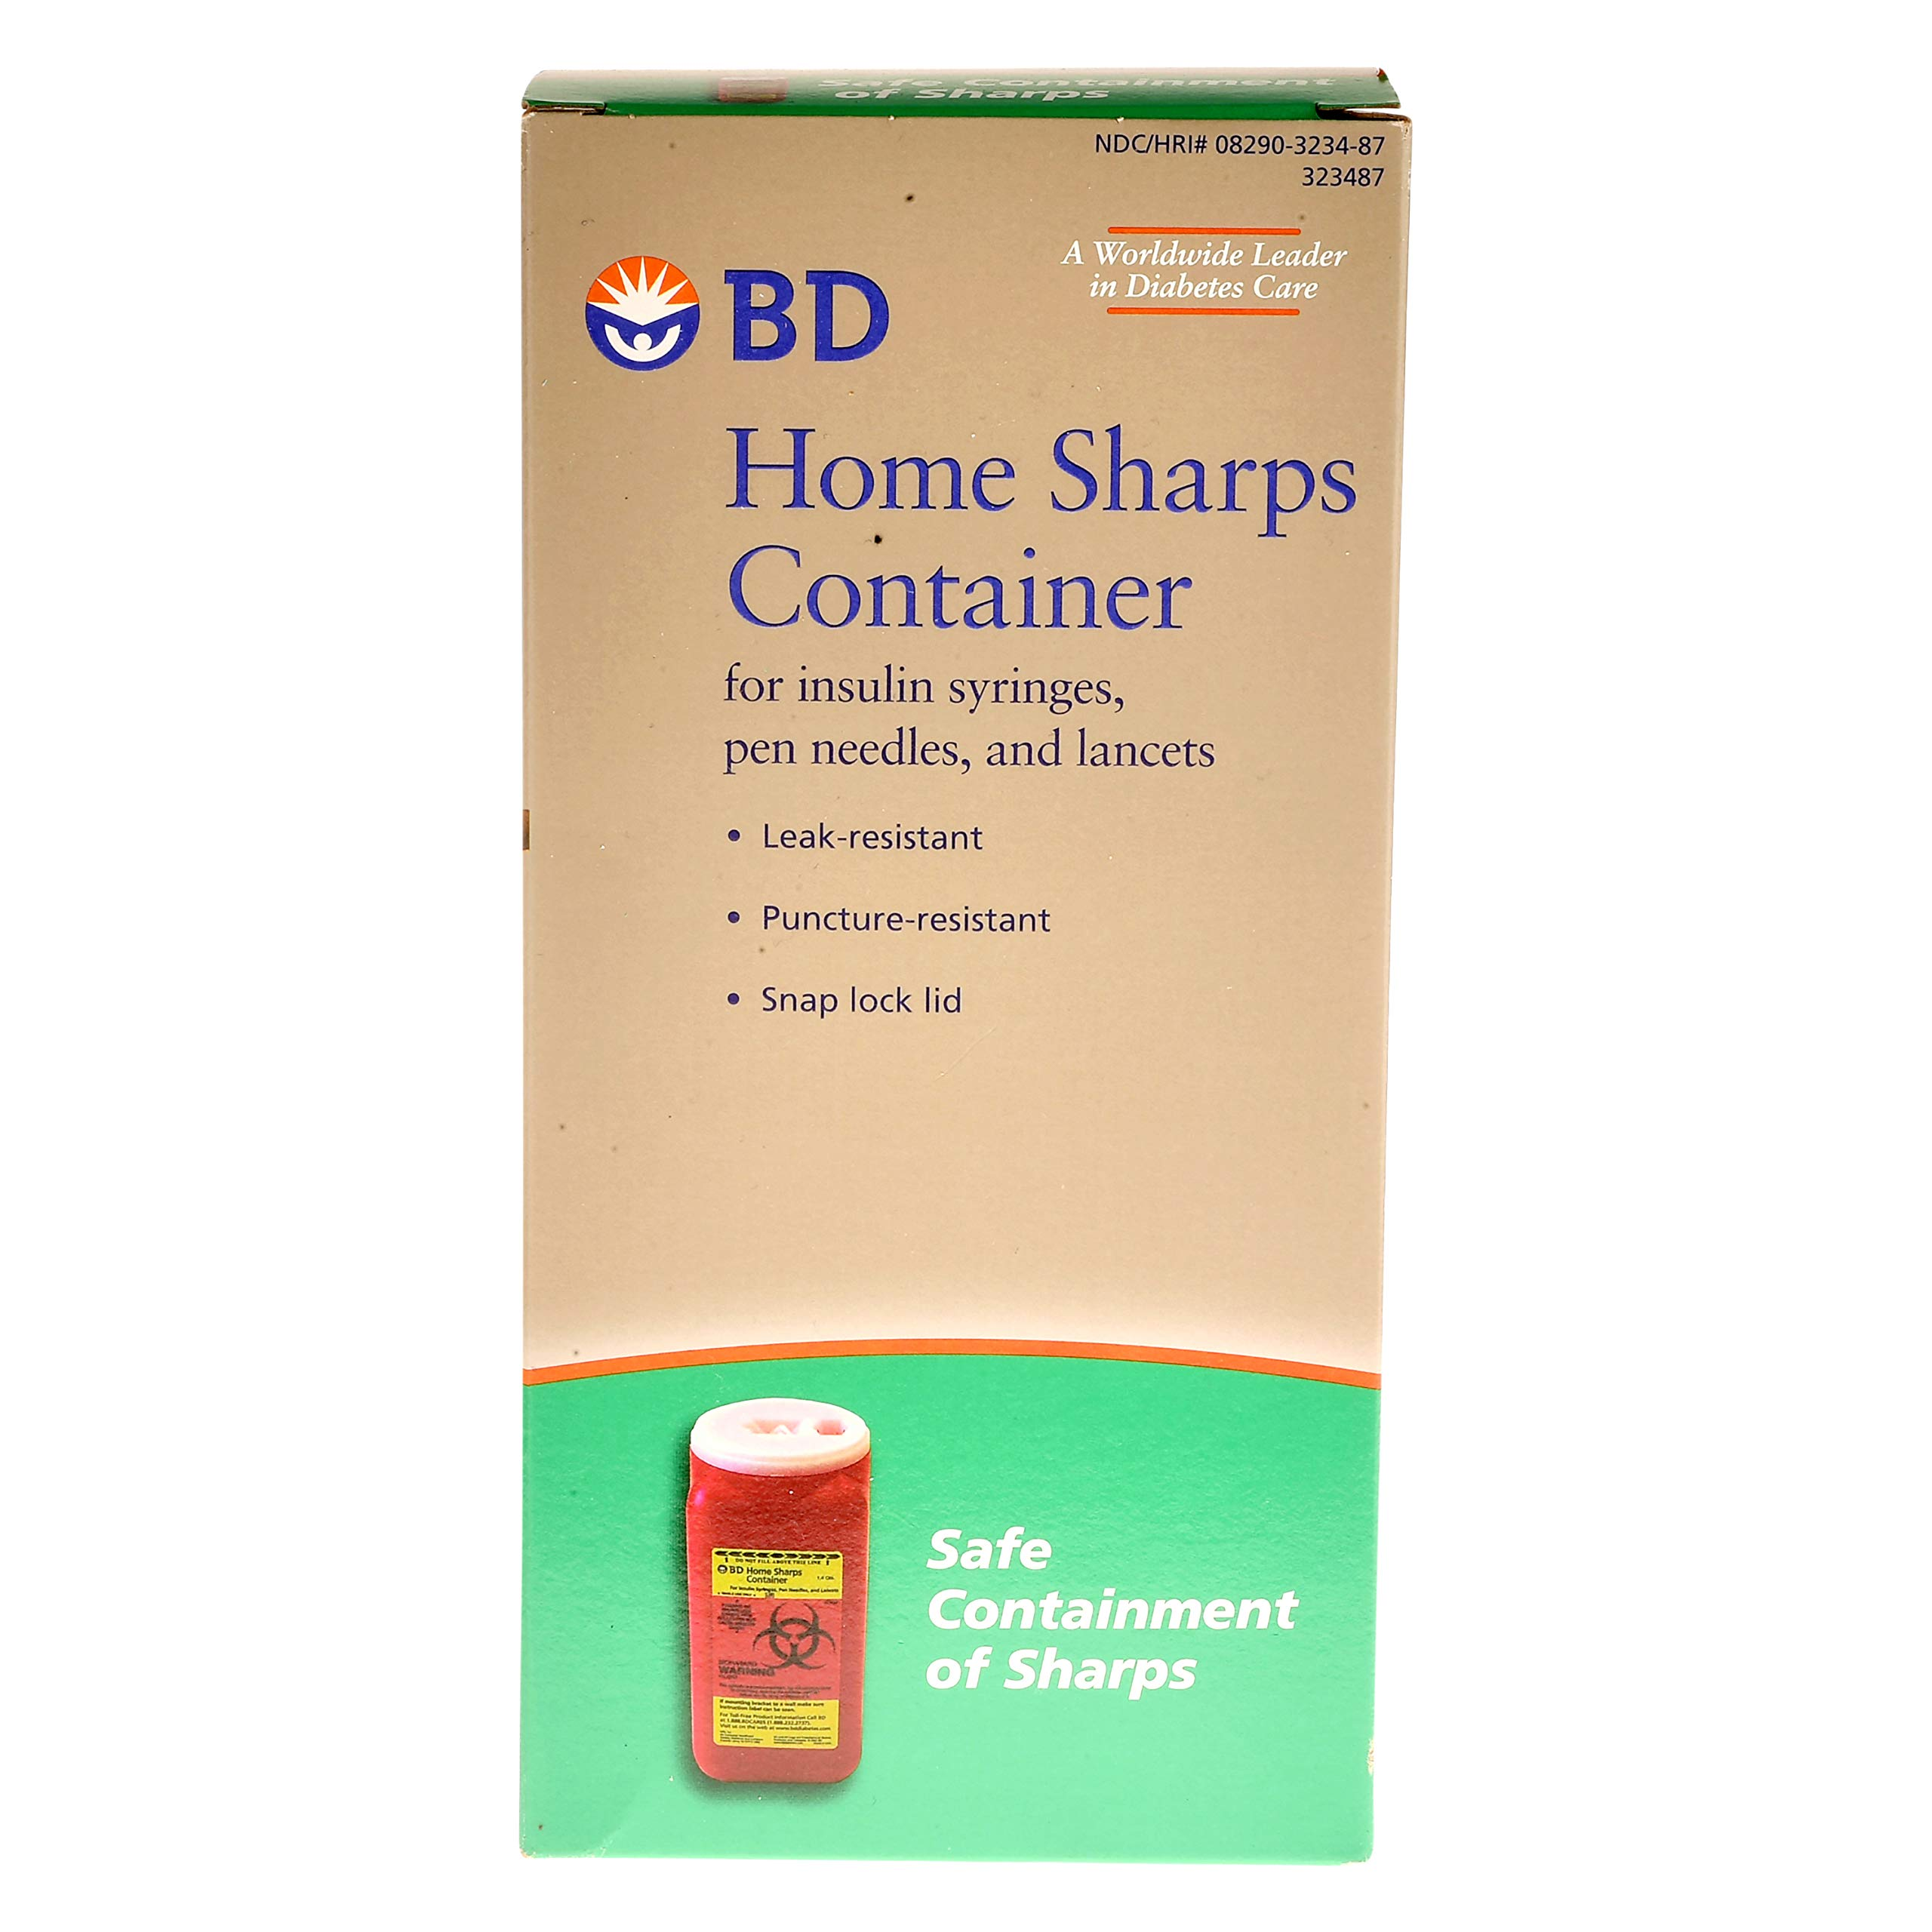 BD Home Sharps Container 1 Each (Pack of 6)